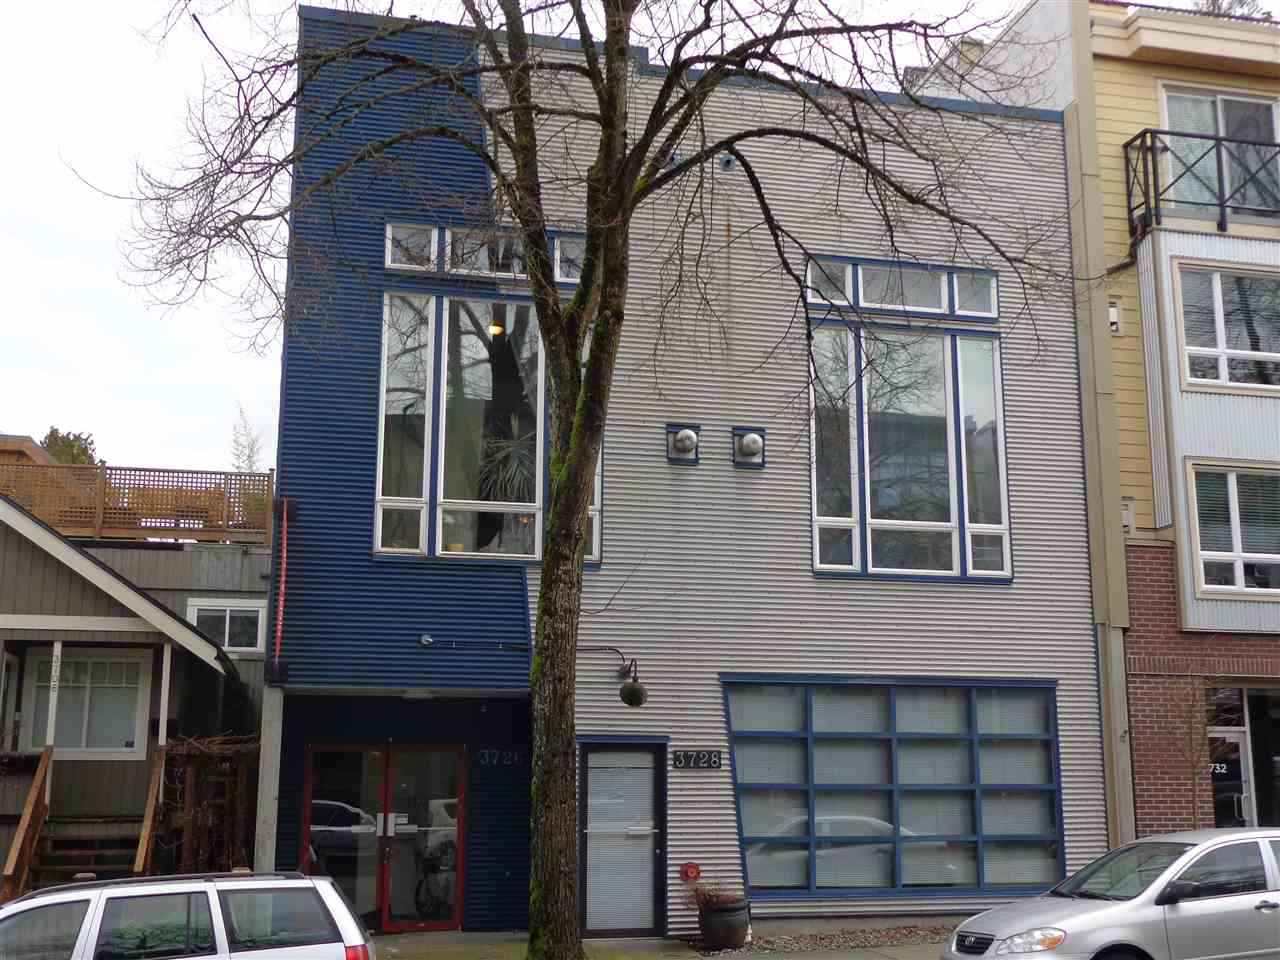 Photo 7: 3 3726 COMMERCIAL STREET in Vancouver: Victoria VE Condo for sale (Vancouver East)  : MLS(r) # R2037396